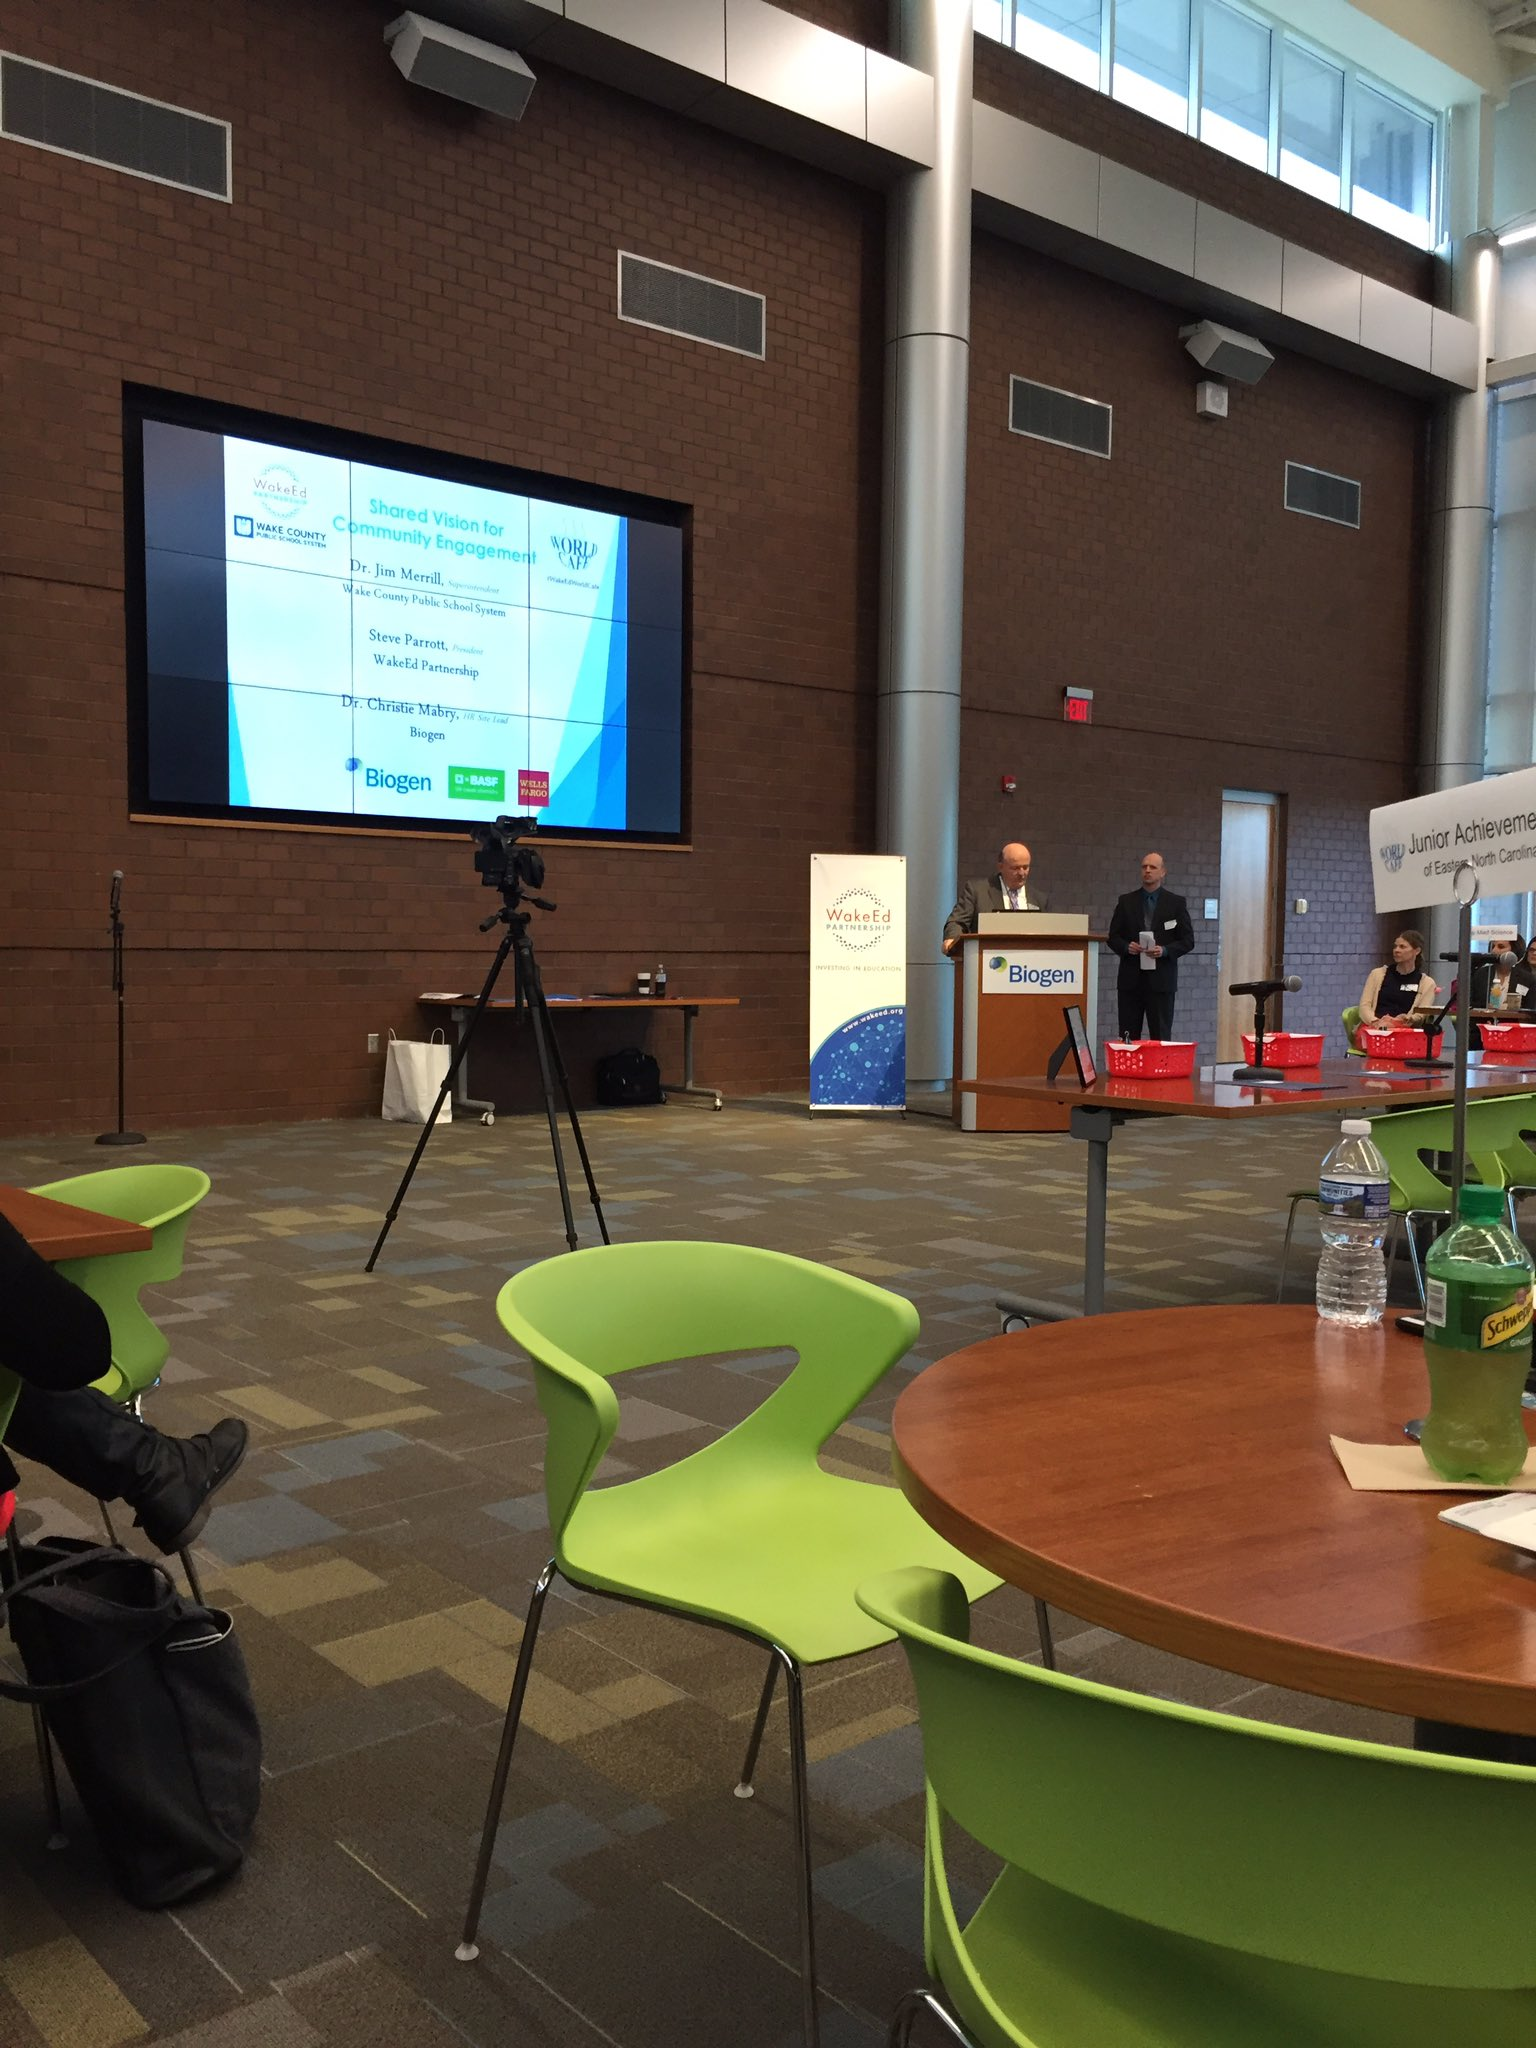 World Cafe 2017 in a wonderful collaborative space! #globalconnections @JeffreysGroveES @wcpssmagnets @biogenidec https://t.co/Gbsa9VE56k